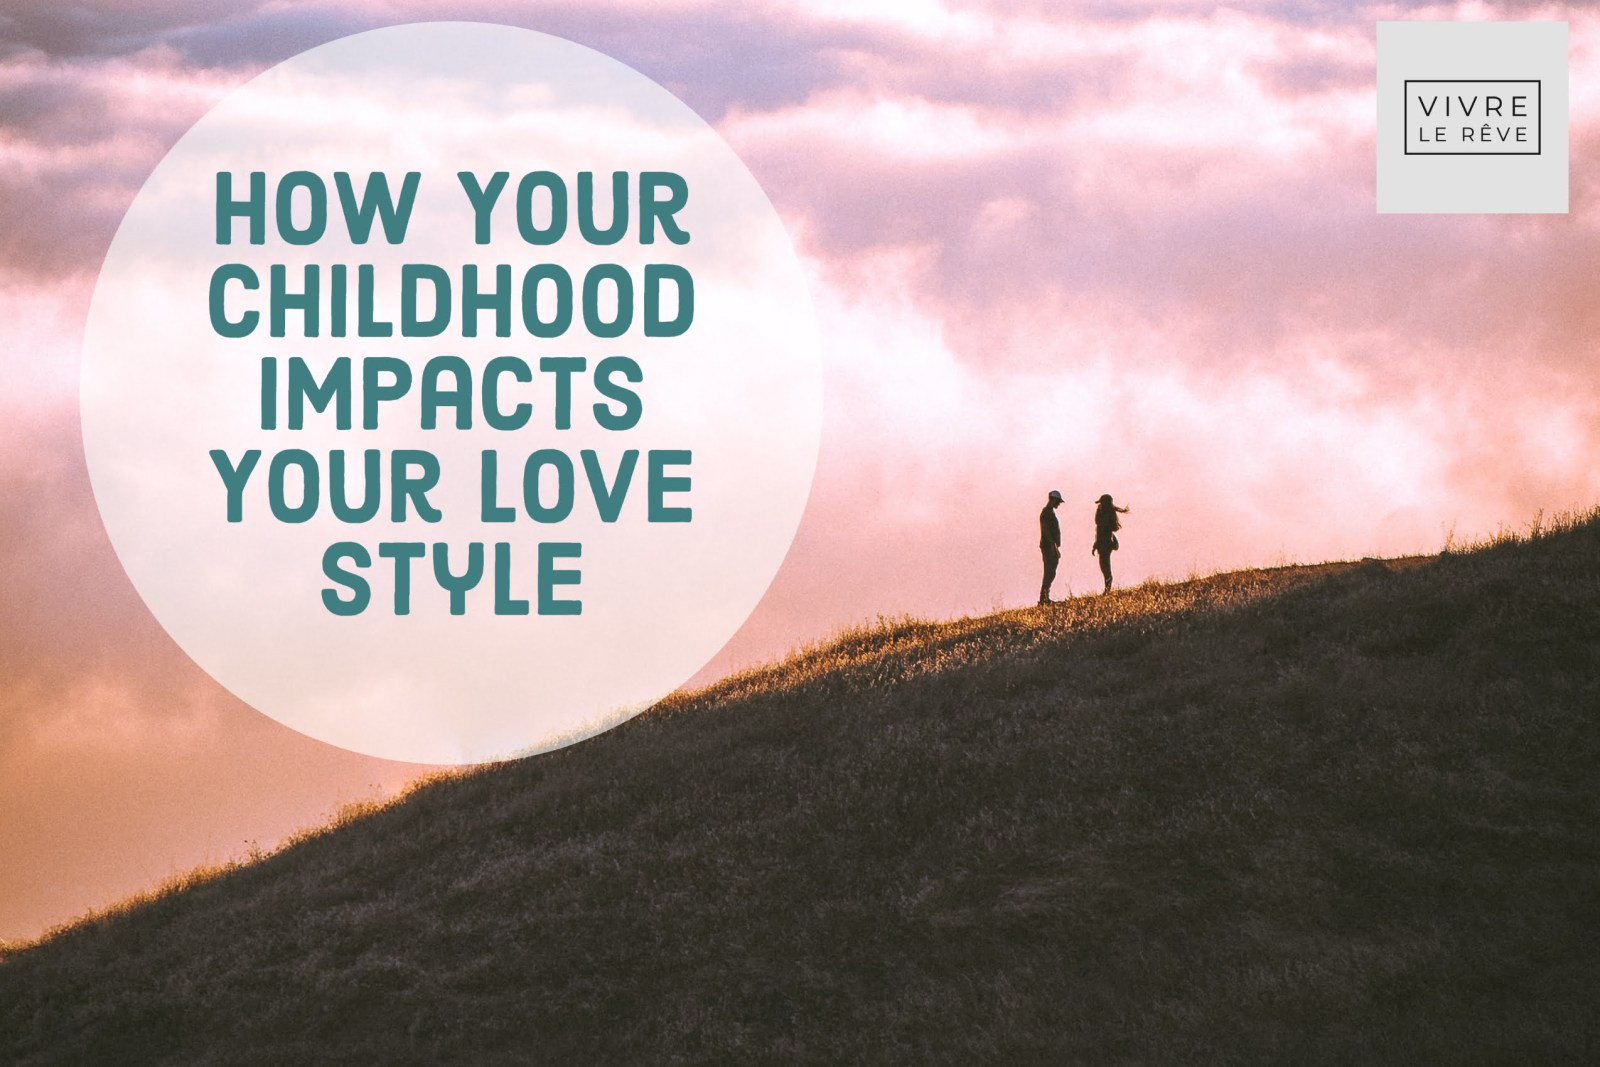 How Your Childhood Impacts Your Love Style